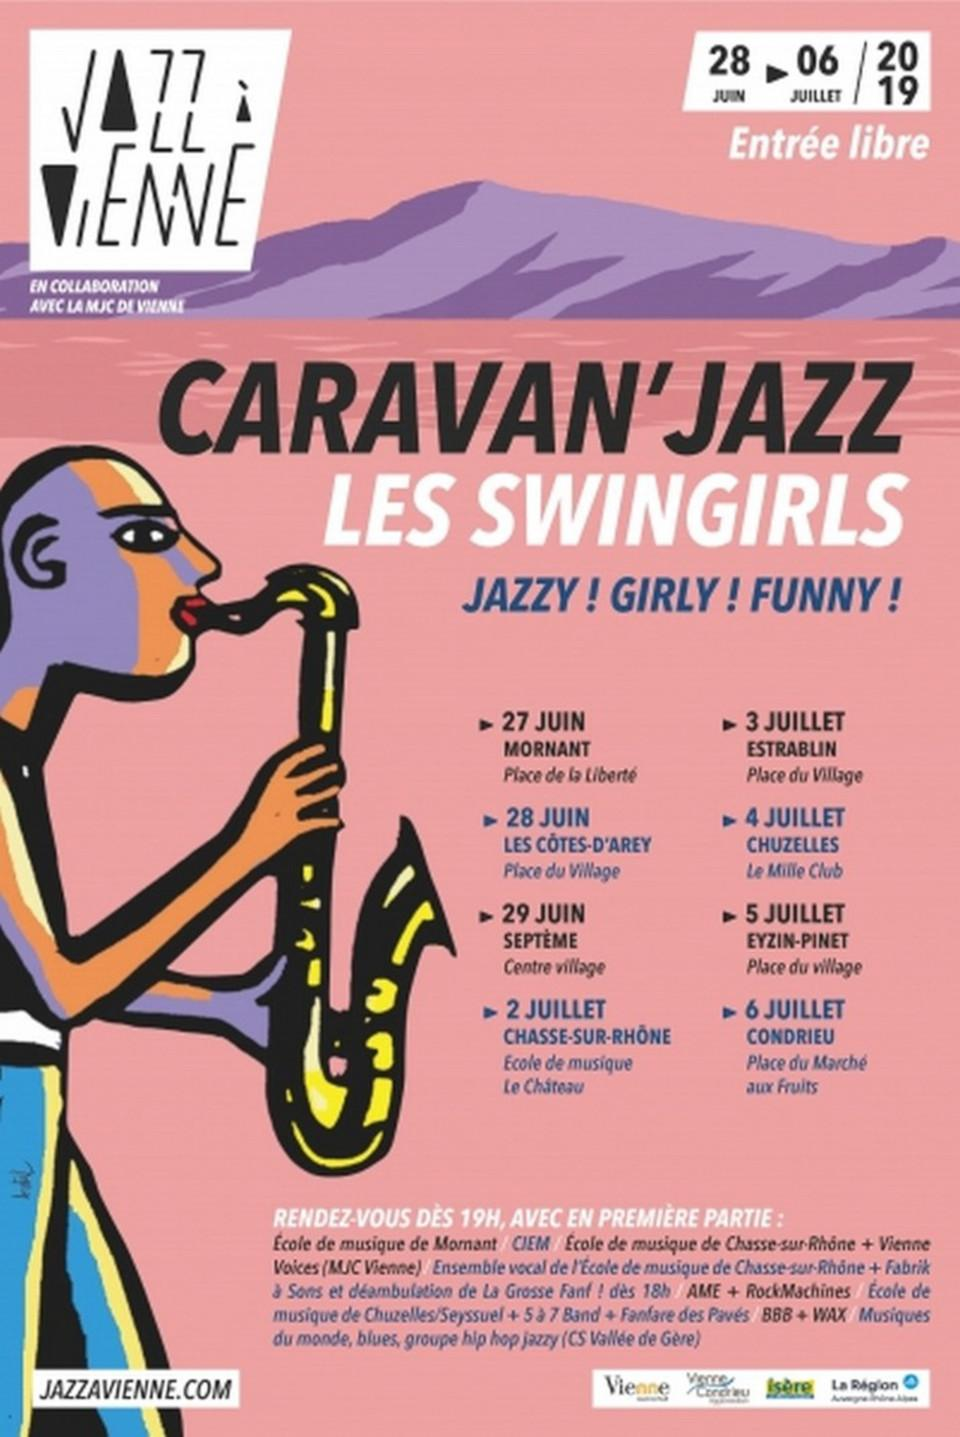 Caravan Jazz 2019 Swingirls